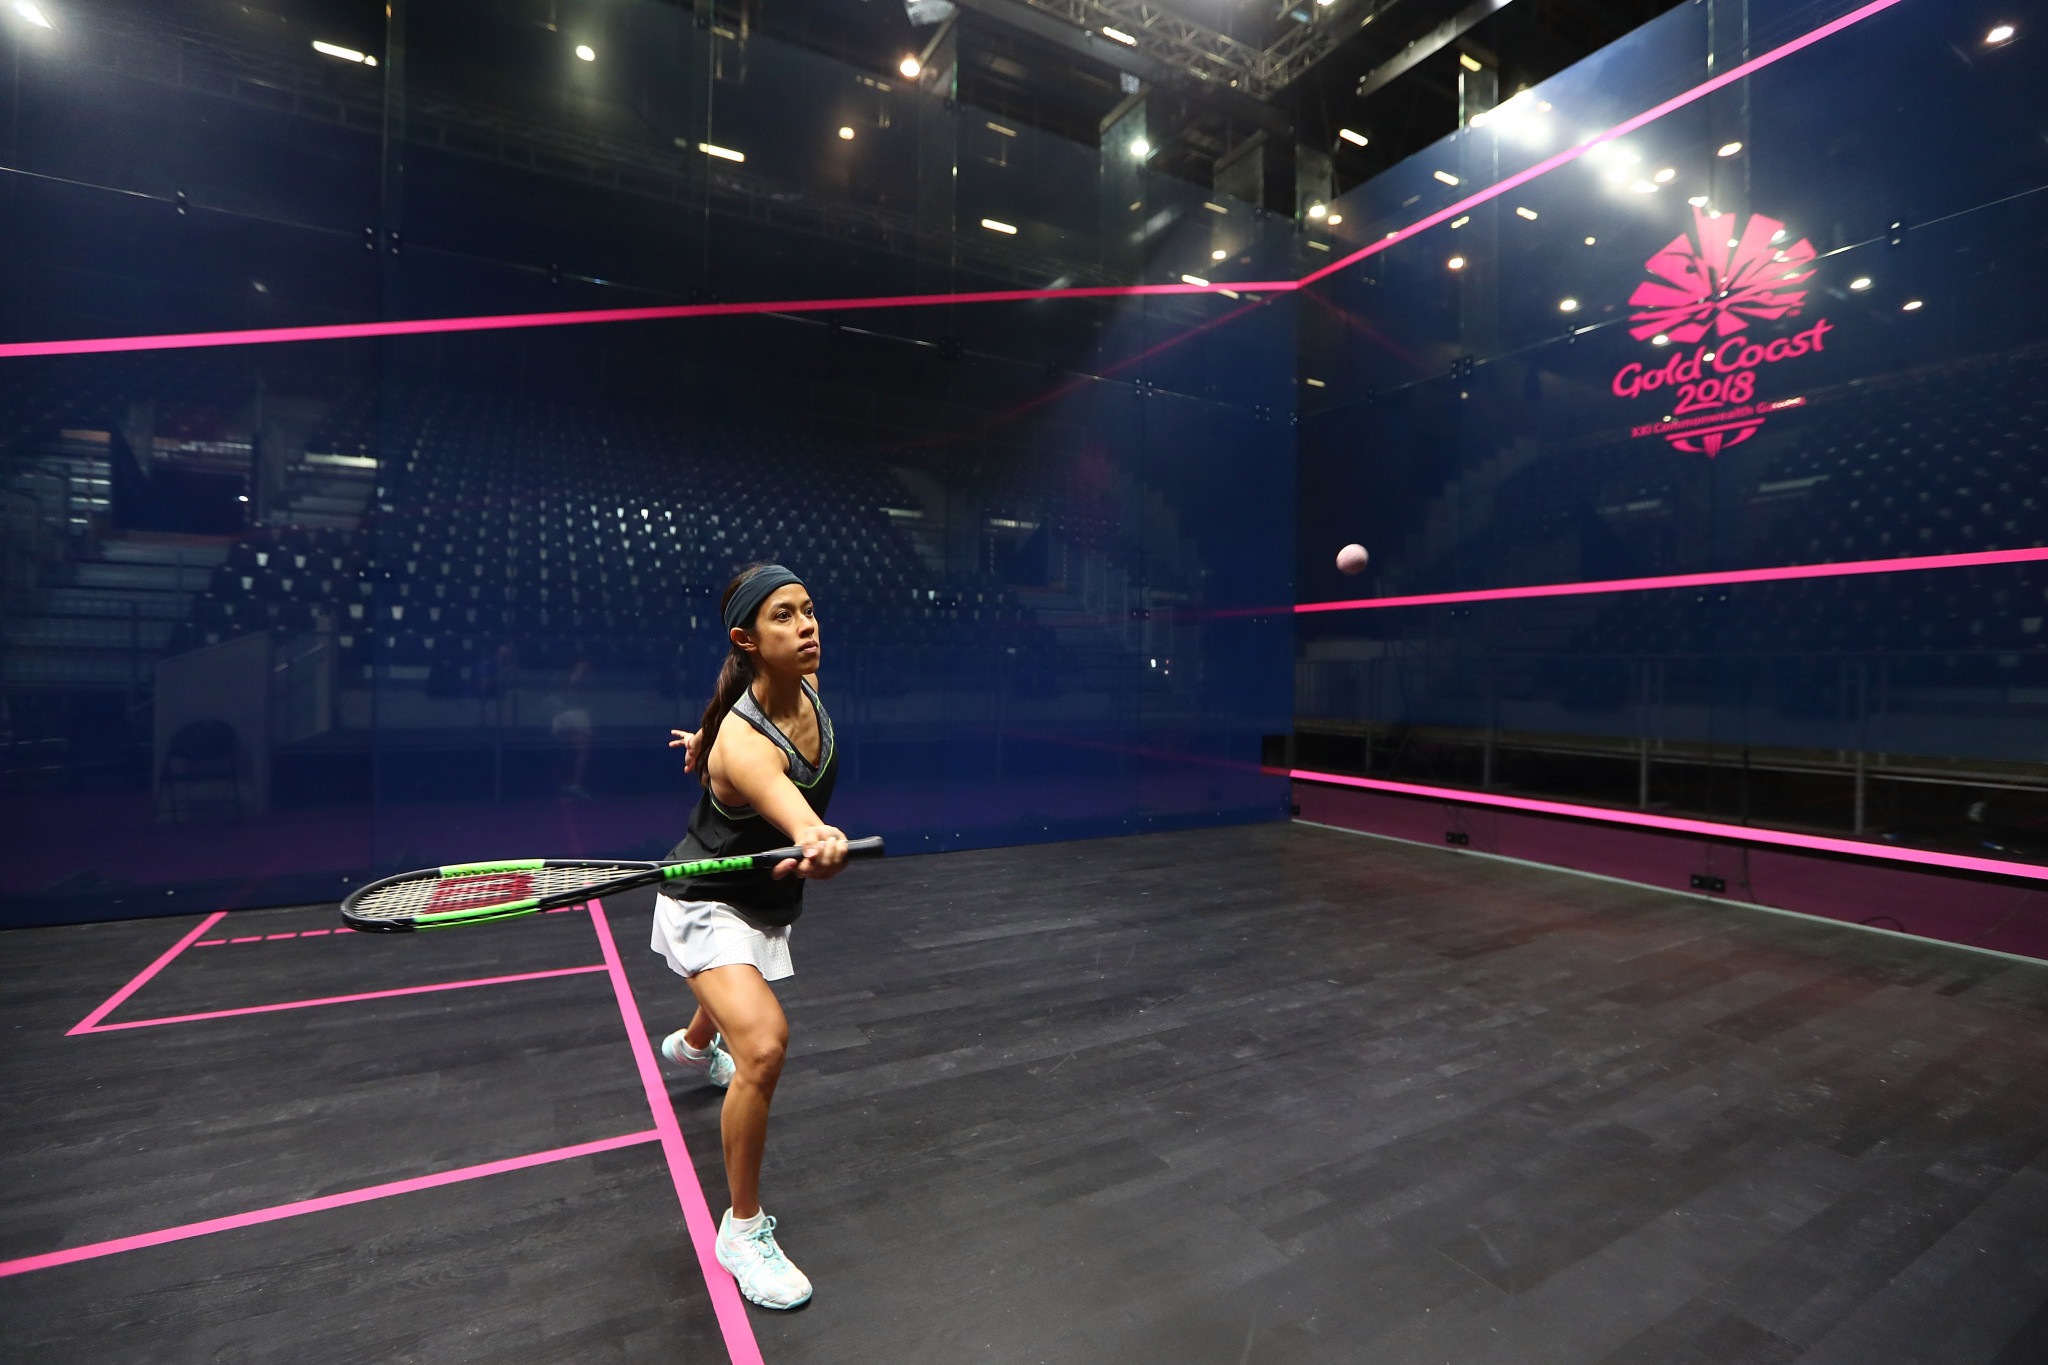 Malaysian squash star Nicole David currently holds a significant lead in the World Games Greatest Athlete of All Time vote ©Getty Images